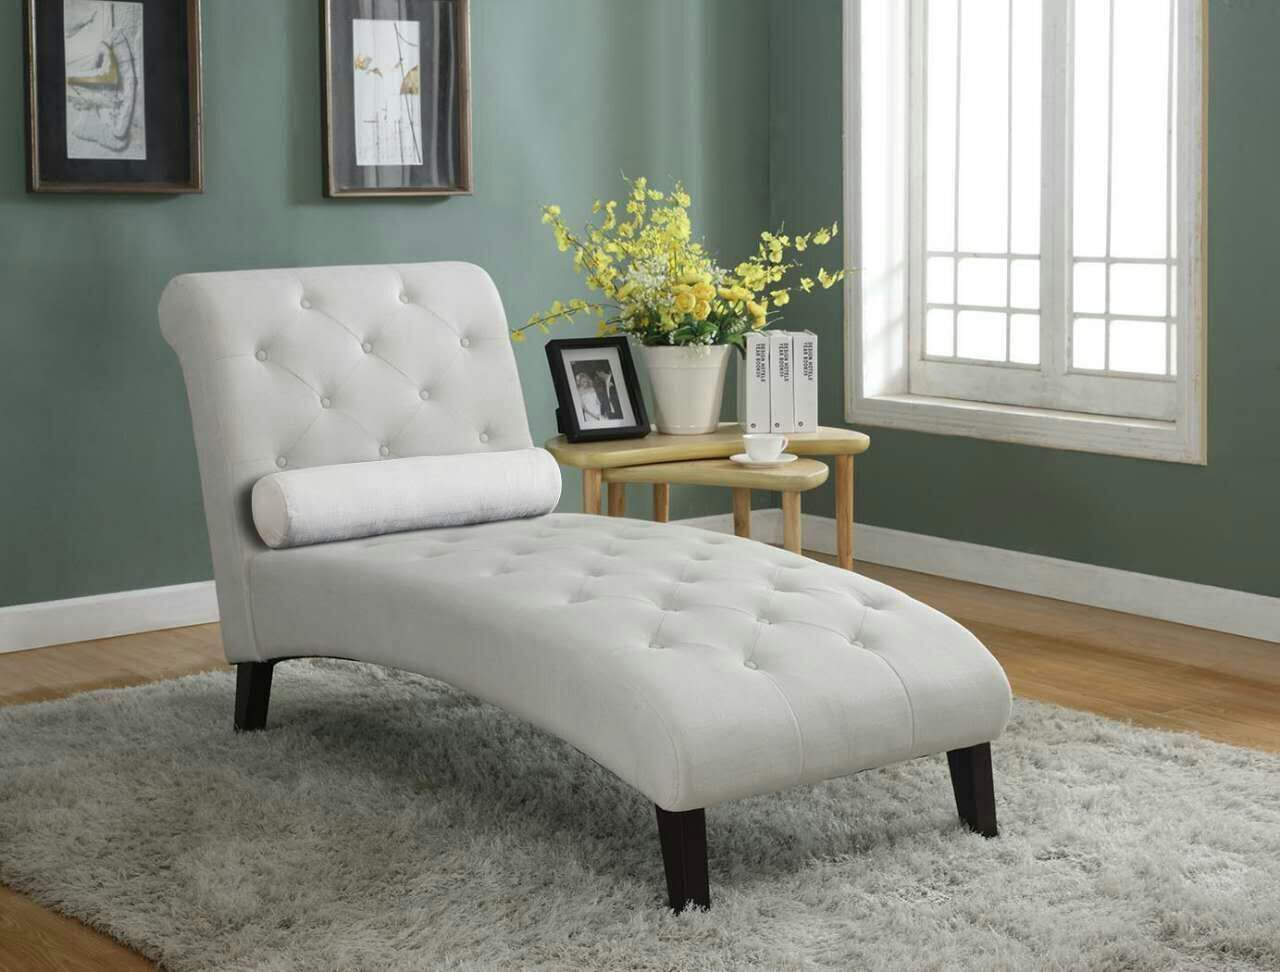 HomeLifeR Linen Chaise Lounger